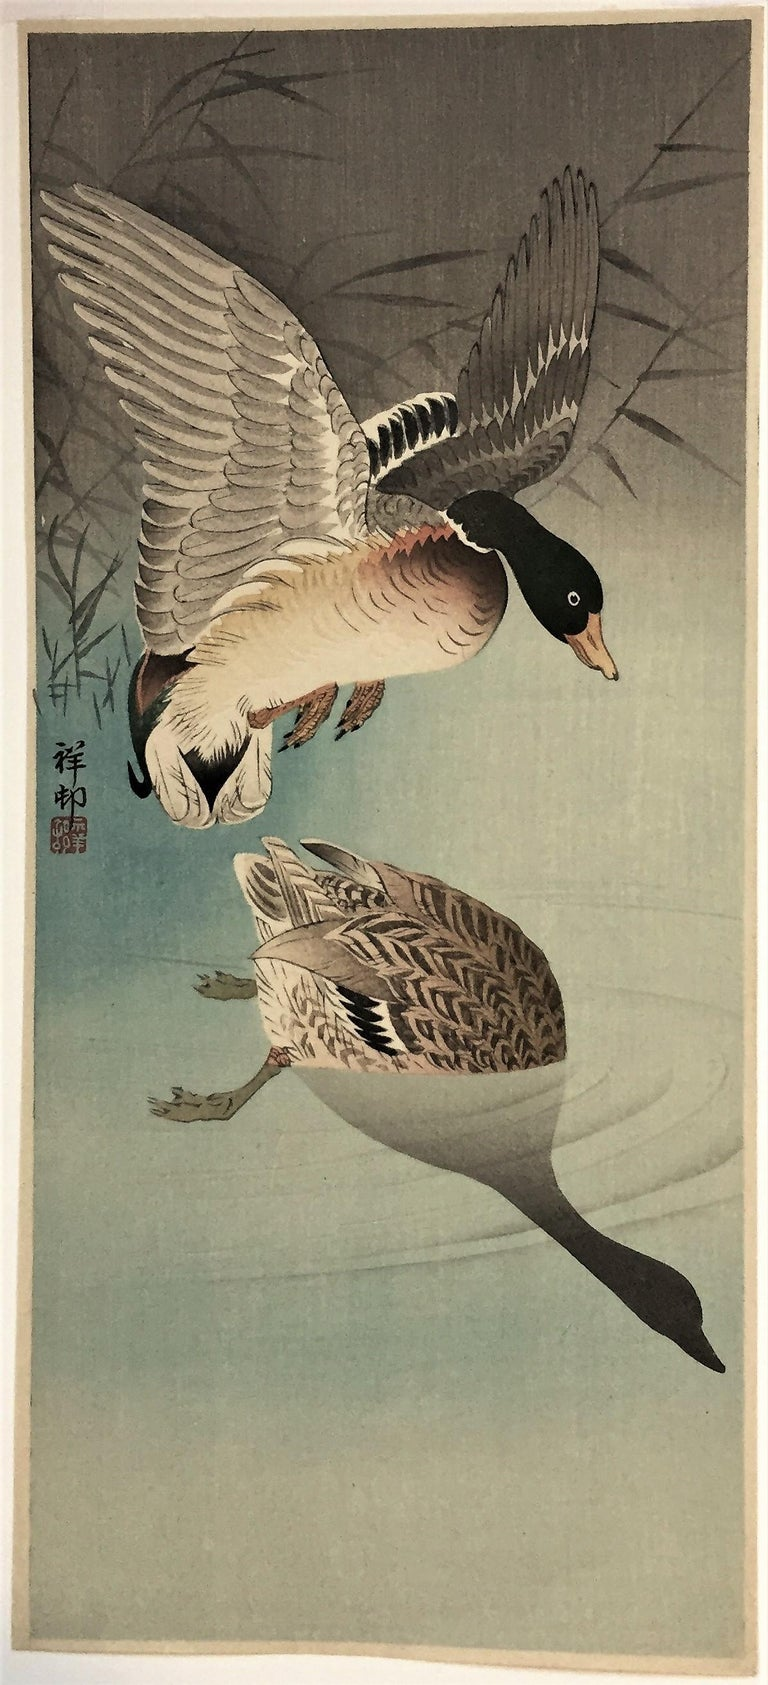 Two Wild Ducks in Flight Above Reeds, a Full Moon Behind. - Showa Print by Ohara Koson